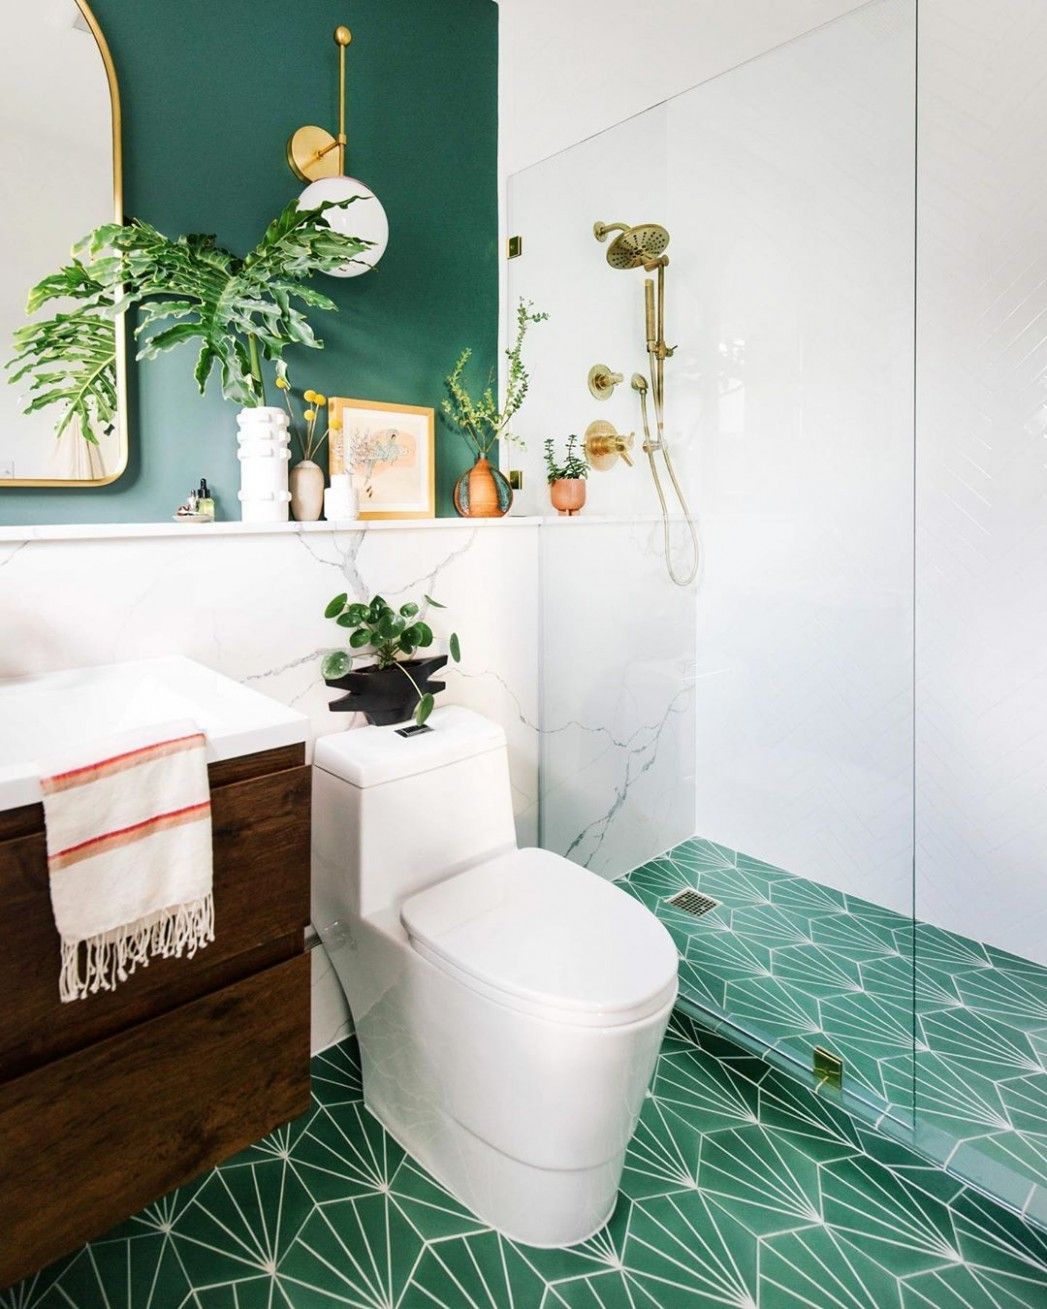 Design Your Own Bathroom In 2020 Design Your Own Bathroom Small Bathroom Storage Small Bathroom Layout